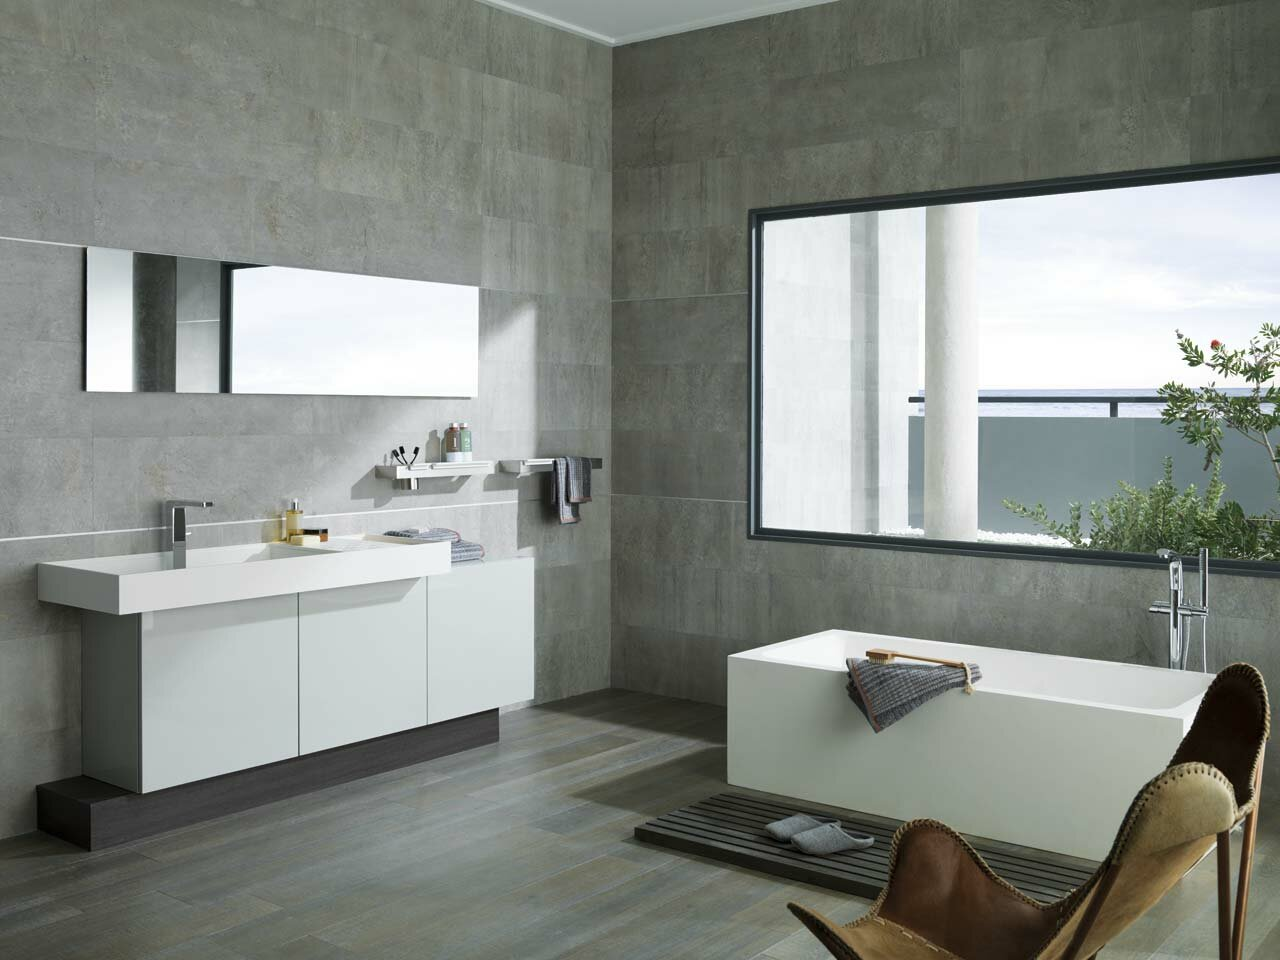 18 examples of latest bathroom designs mostbeautifulthings for Muebles italianos modernos